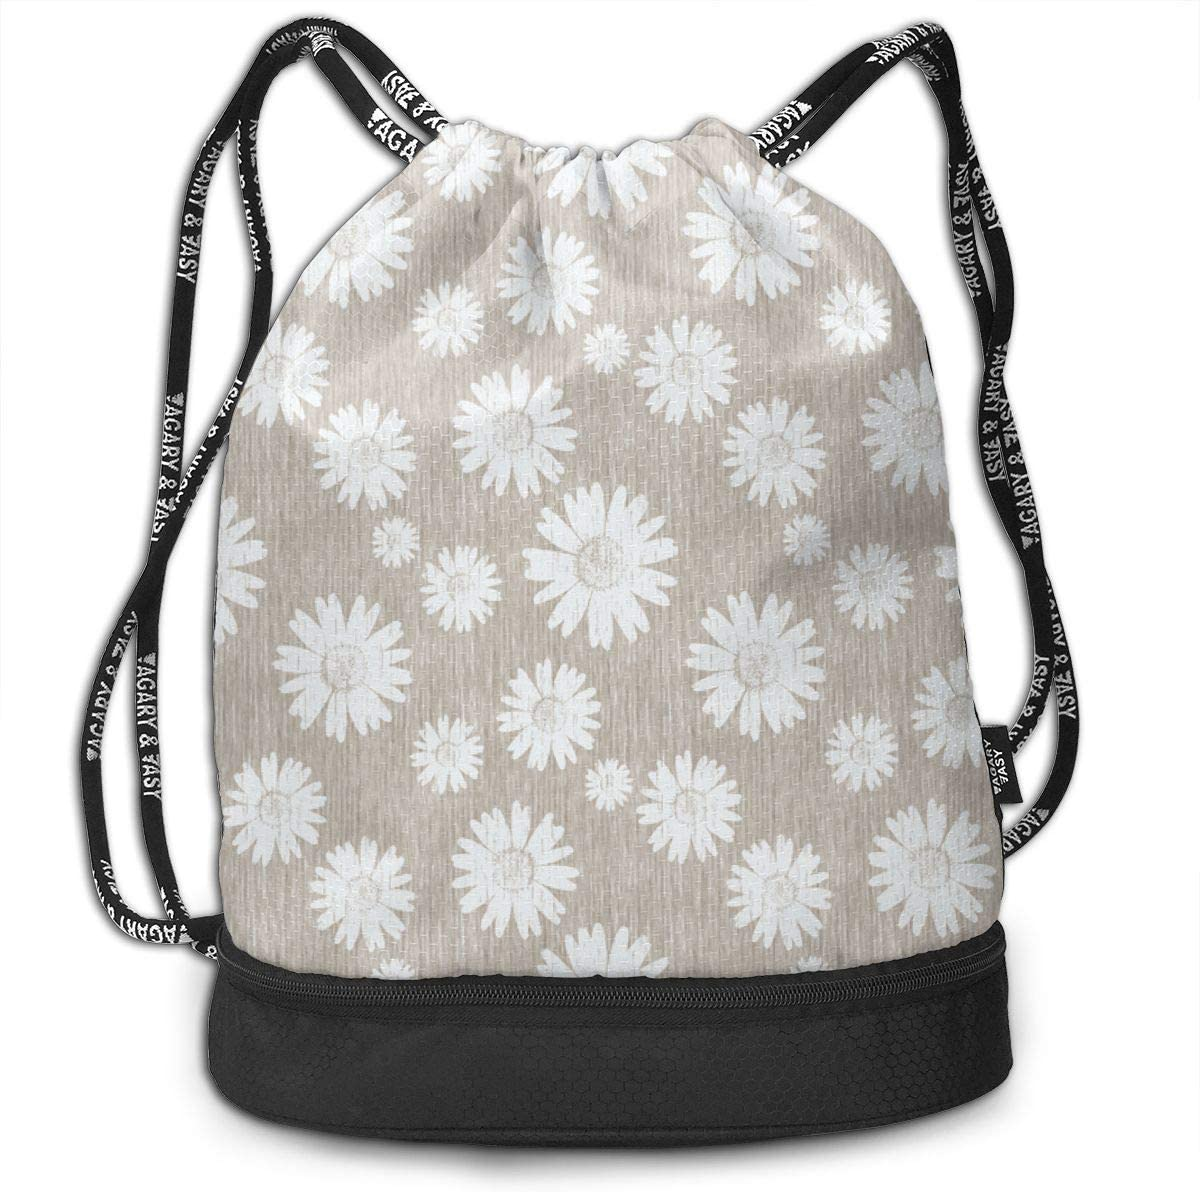 French Linen Daisy Antique White Drawstring Backpack Sports Athletic Gym Cinch Sack String Storage Bags for Hiking Travel Beach